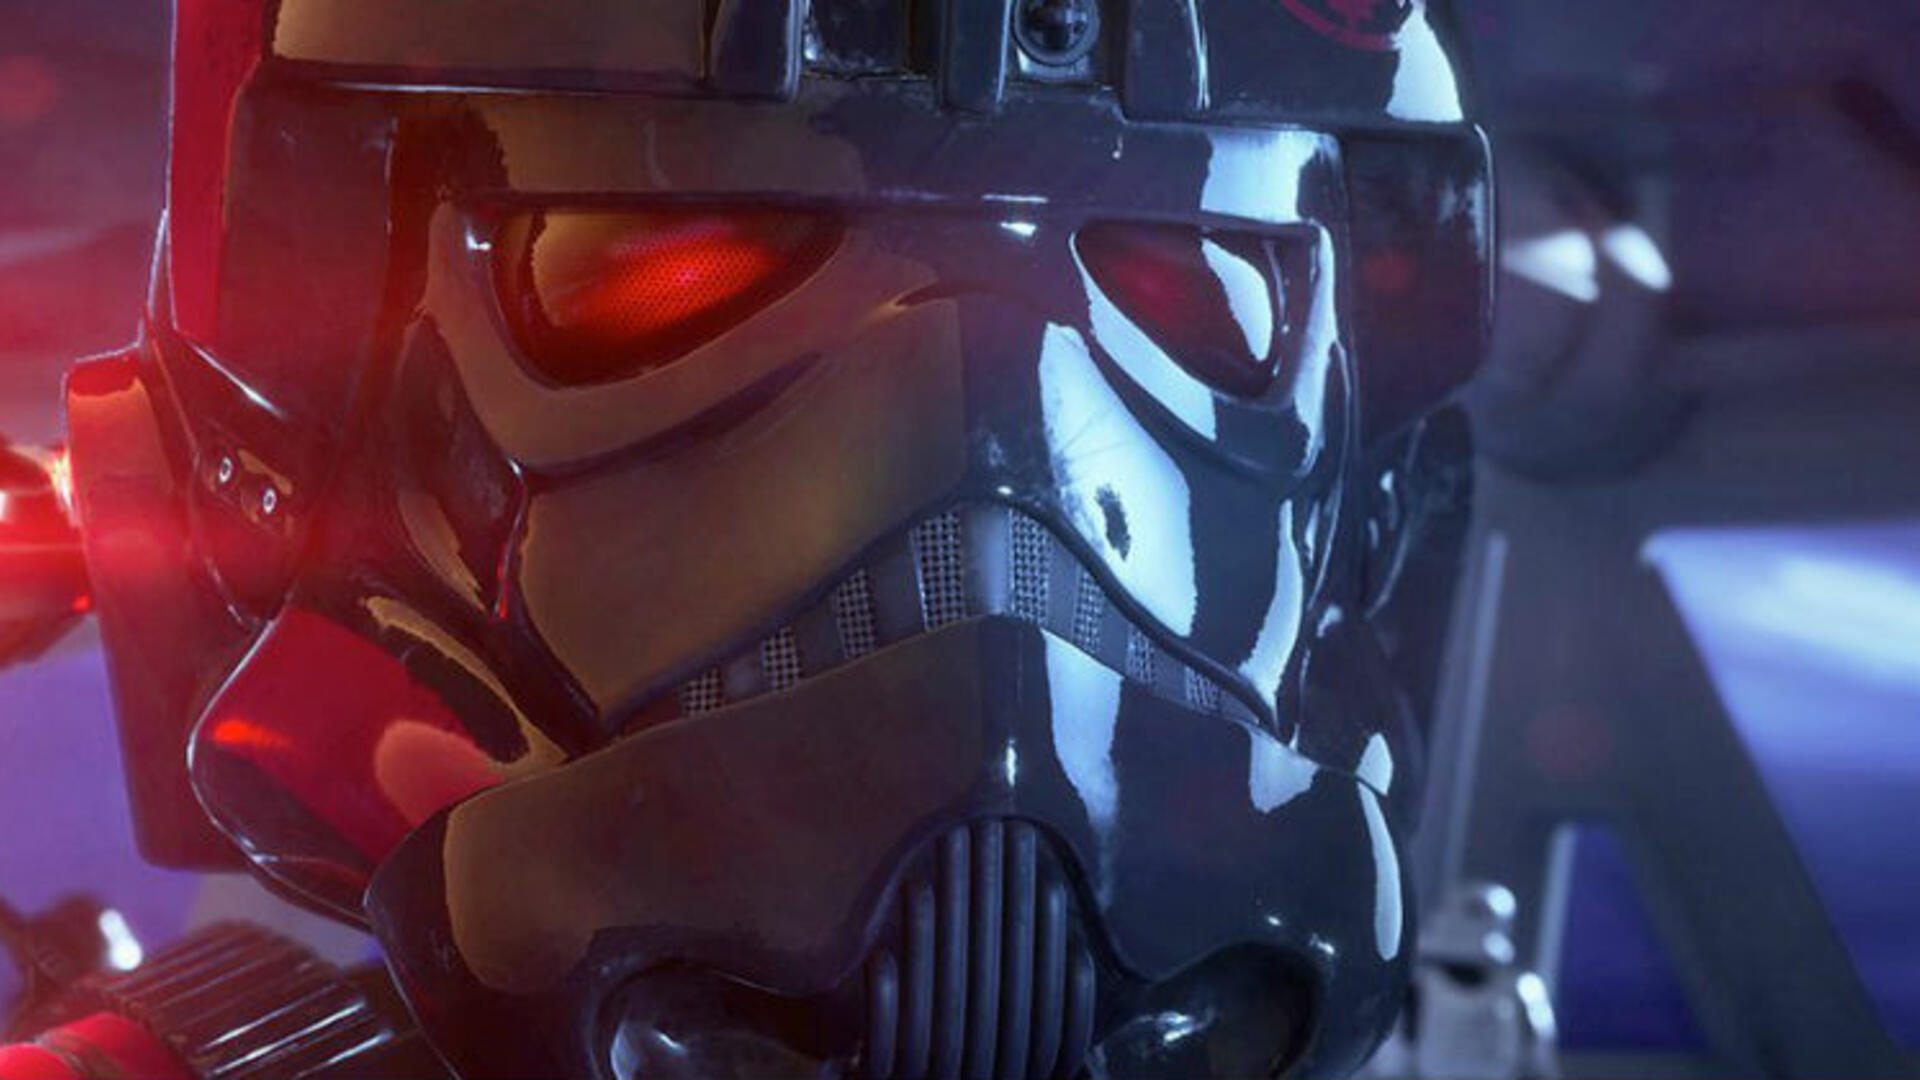 """EA: Star Wars Battlefront 2 a """"Learning Opportunity"""" as Company Readies Respawn's Star Wars Game for 2020, New Battlefield in October 2018"""